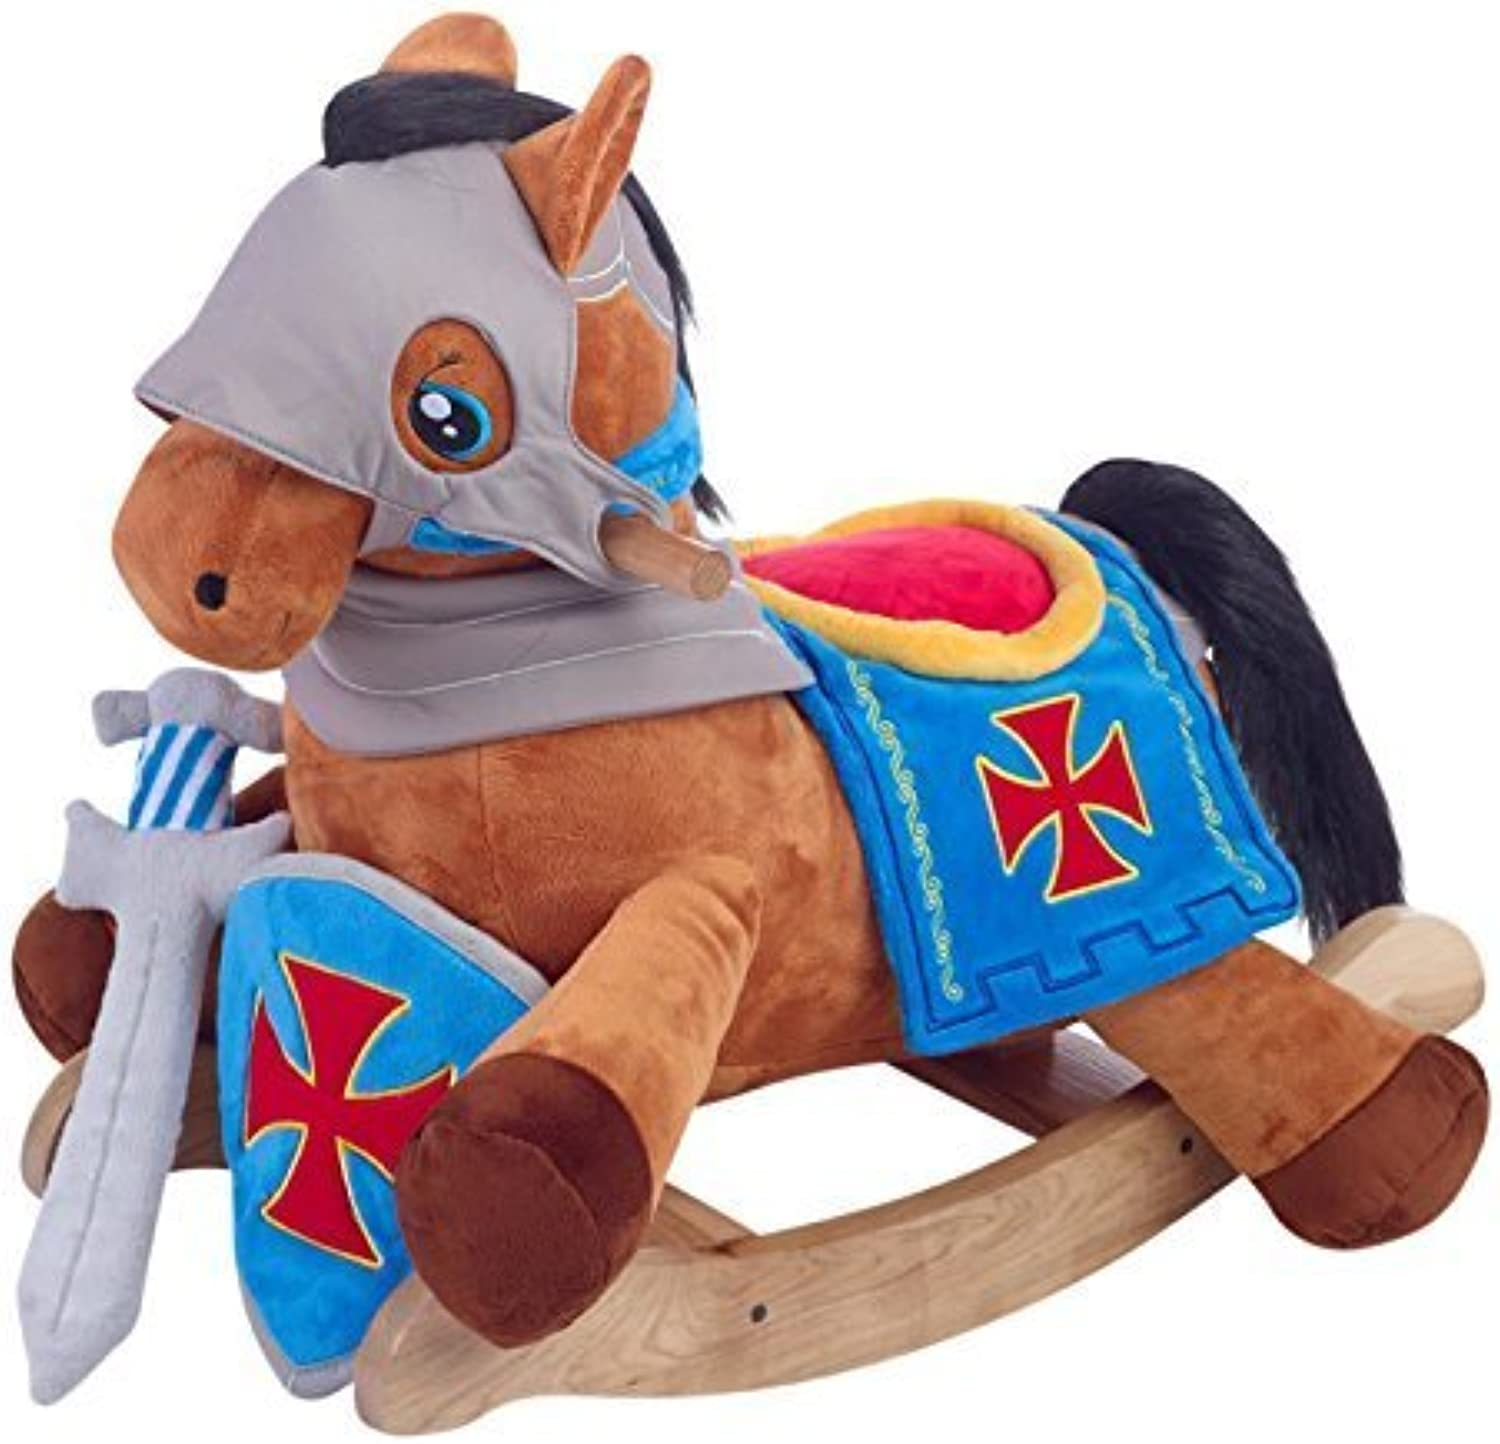 perfecto Rockabye Knight's Horse Horse Horse Jugar & Rock Ride On by Rockabye  encuentra tu favorito aquí